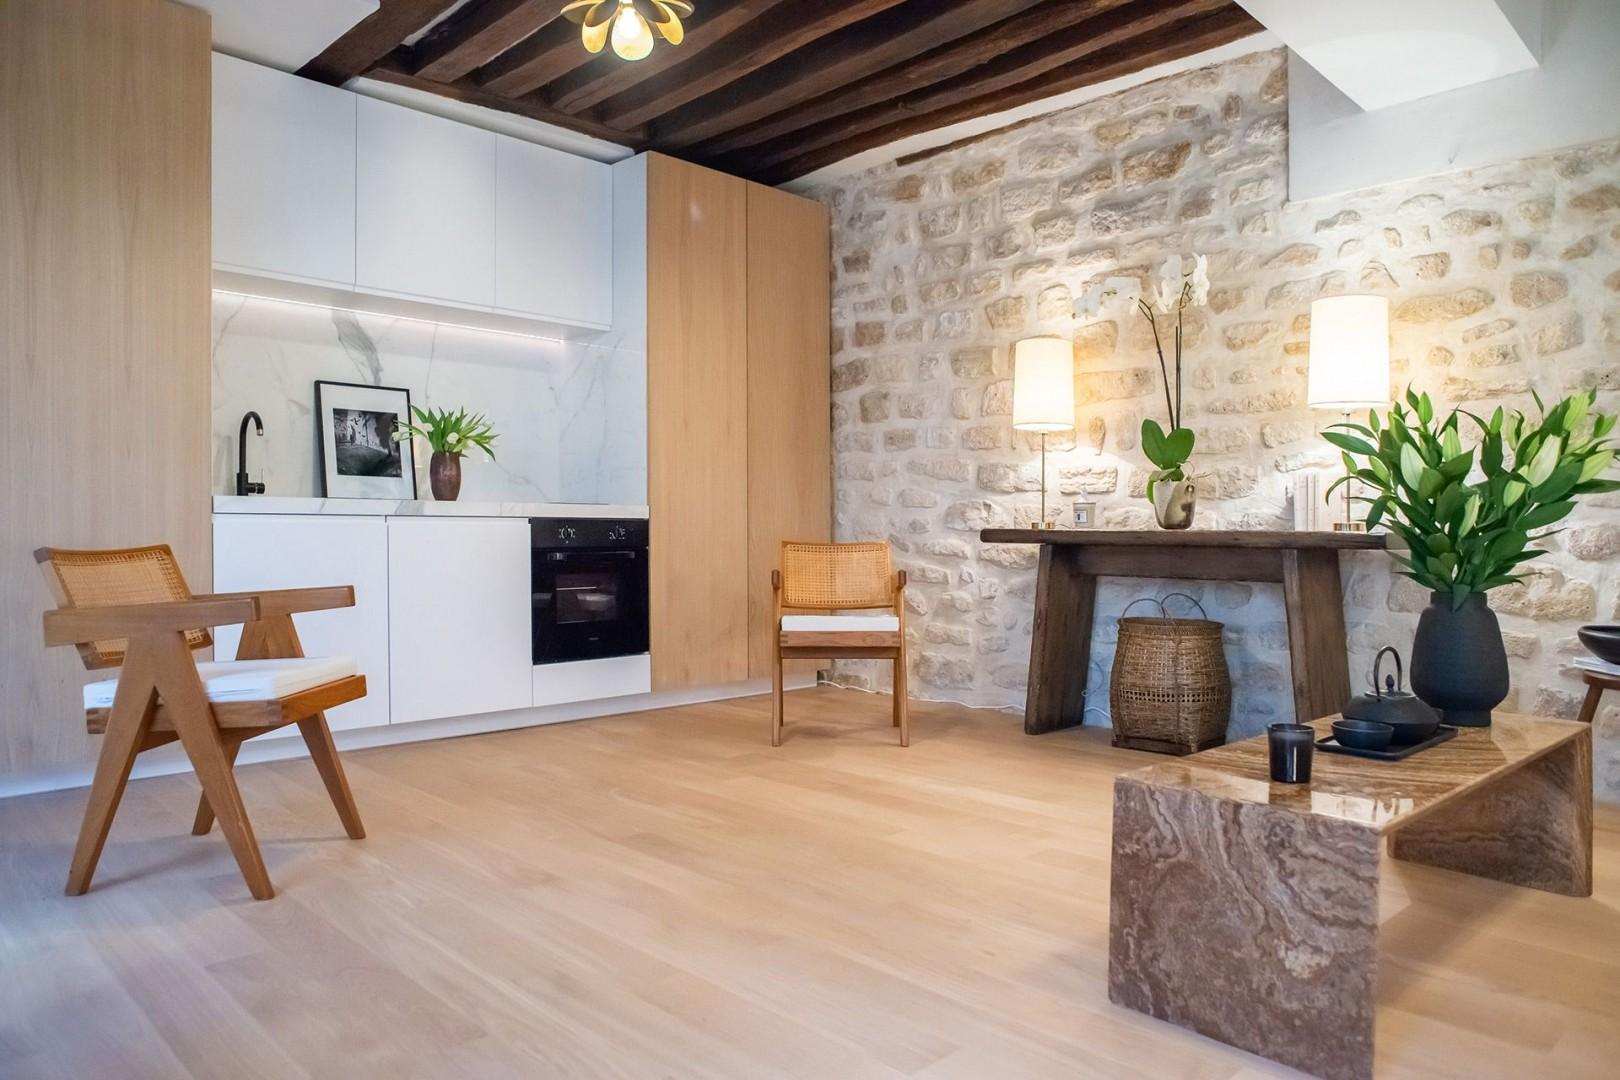 The Meunier retains its original Marais charm thanks to the wood beams and exposed stone wall.